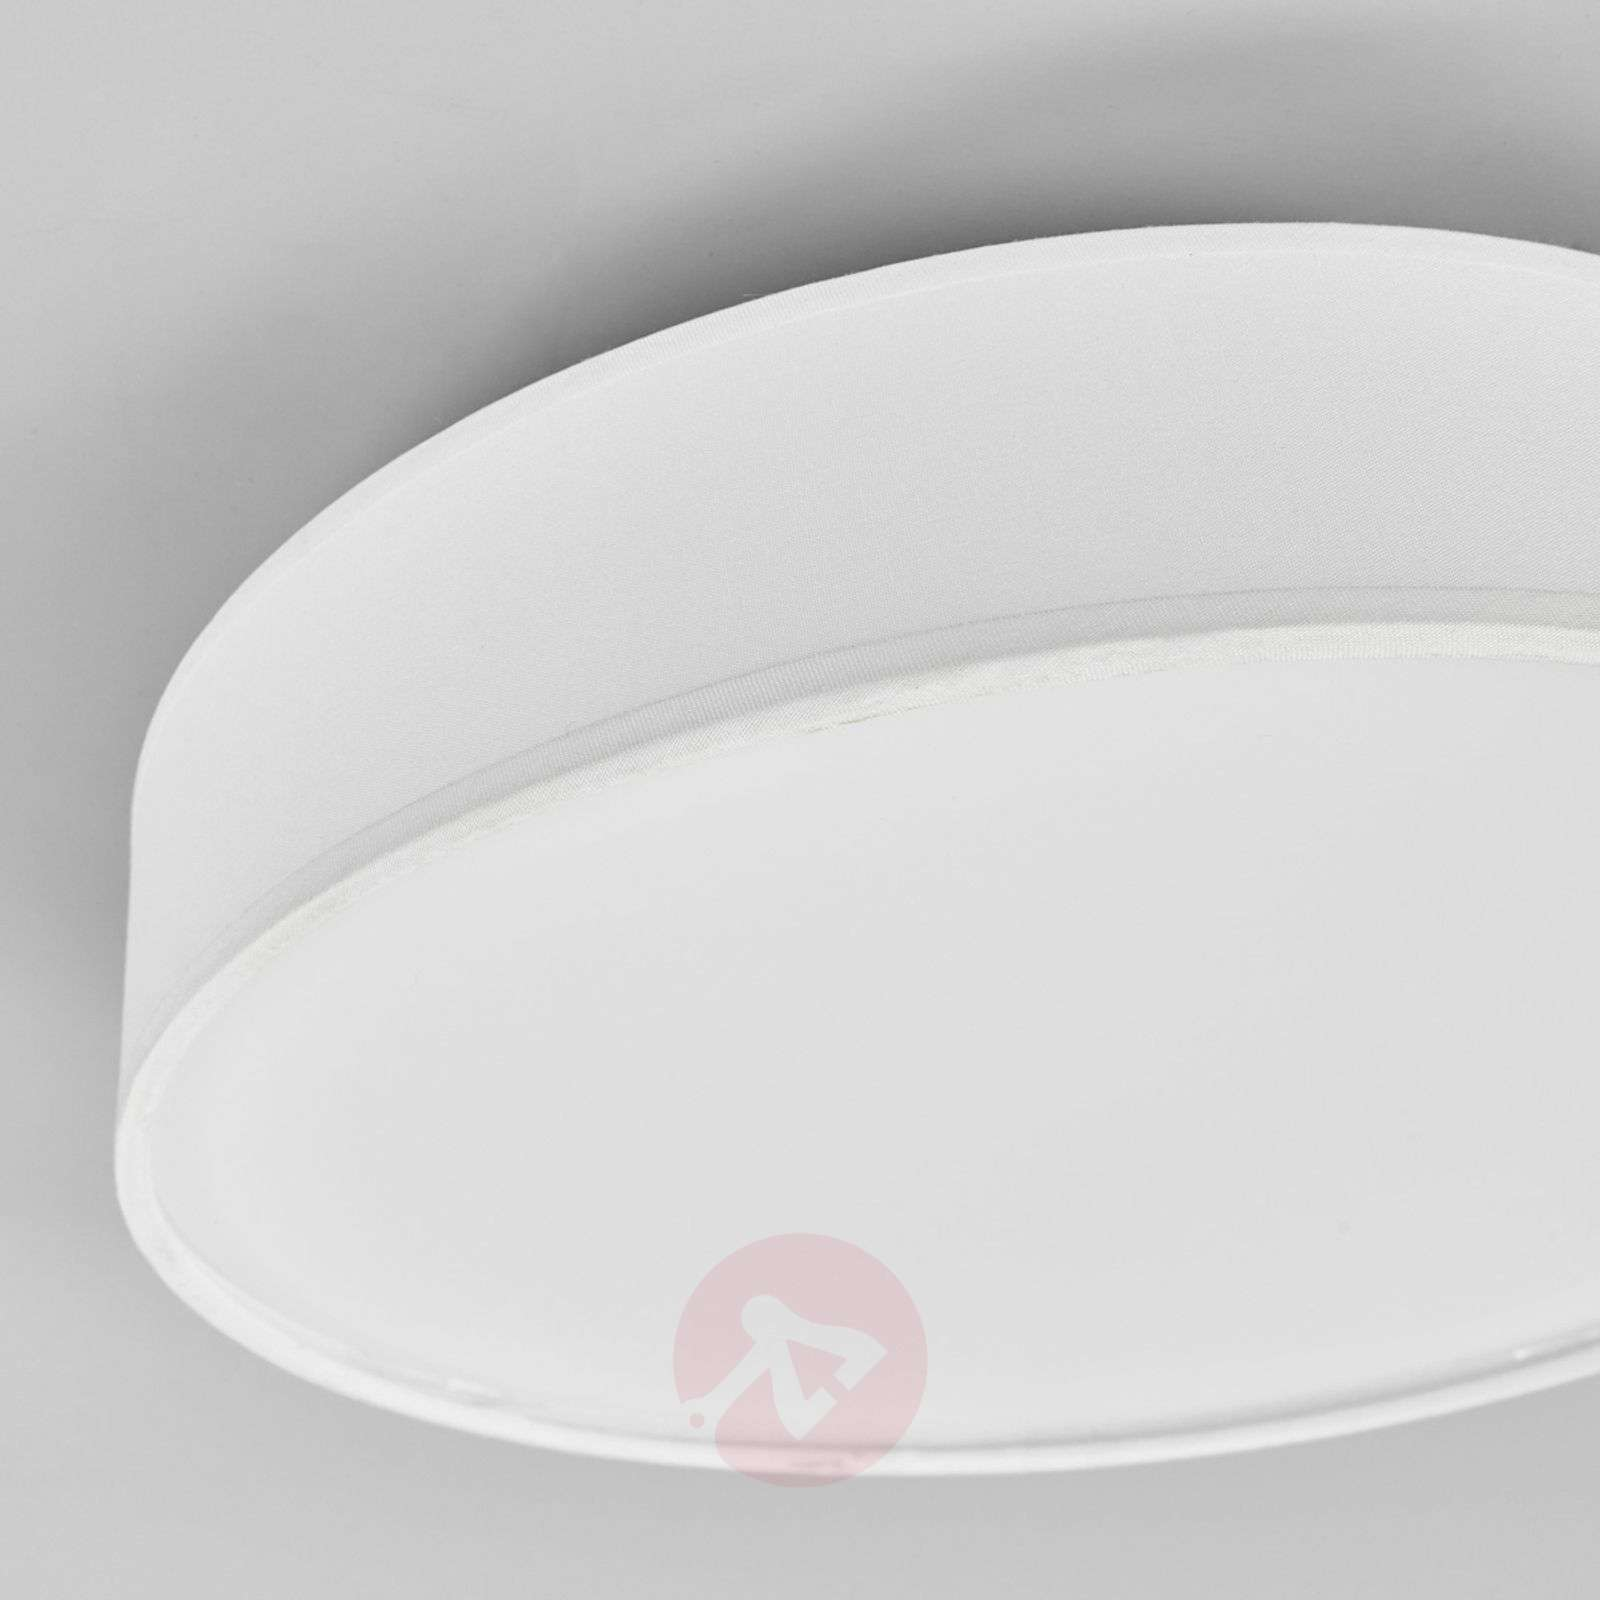 Fabric LED ceiling lamp Saira, 30 cm, white-9625086-02